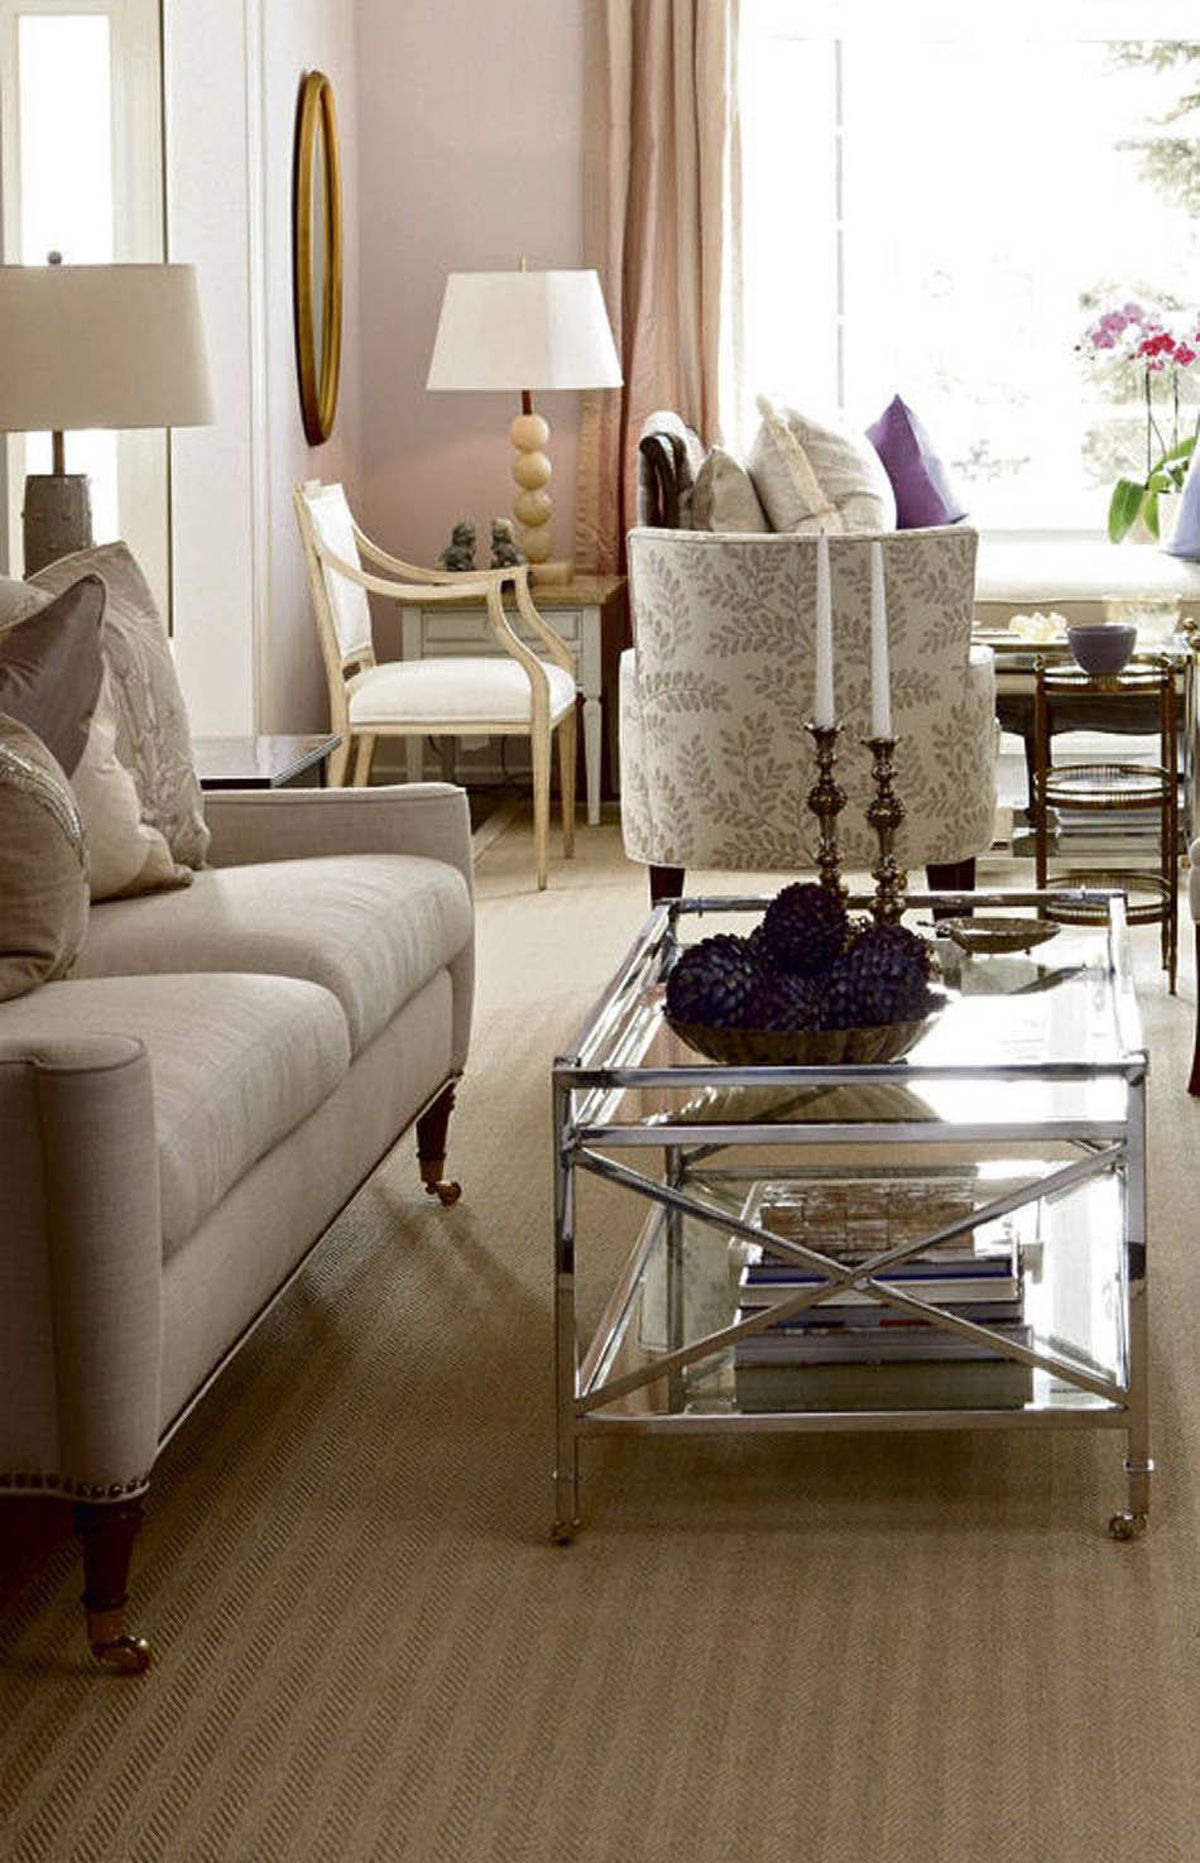 THE LOOK I need rooms designed for entertaining with sophisticated elegance. Since the living room is supposed to be a salon, it needs to appear properly appointed. I'm not into fabrics that can't stand up to family life, but a little polish and a nod to glamour are always important.